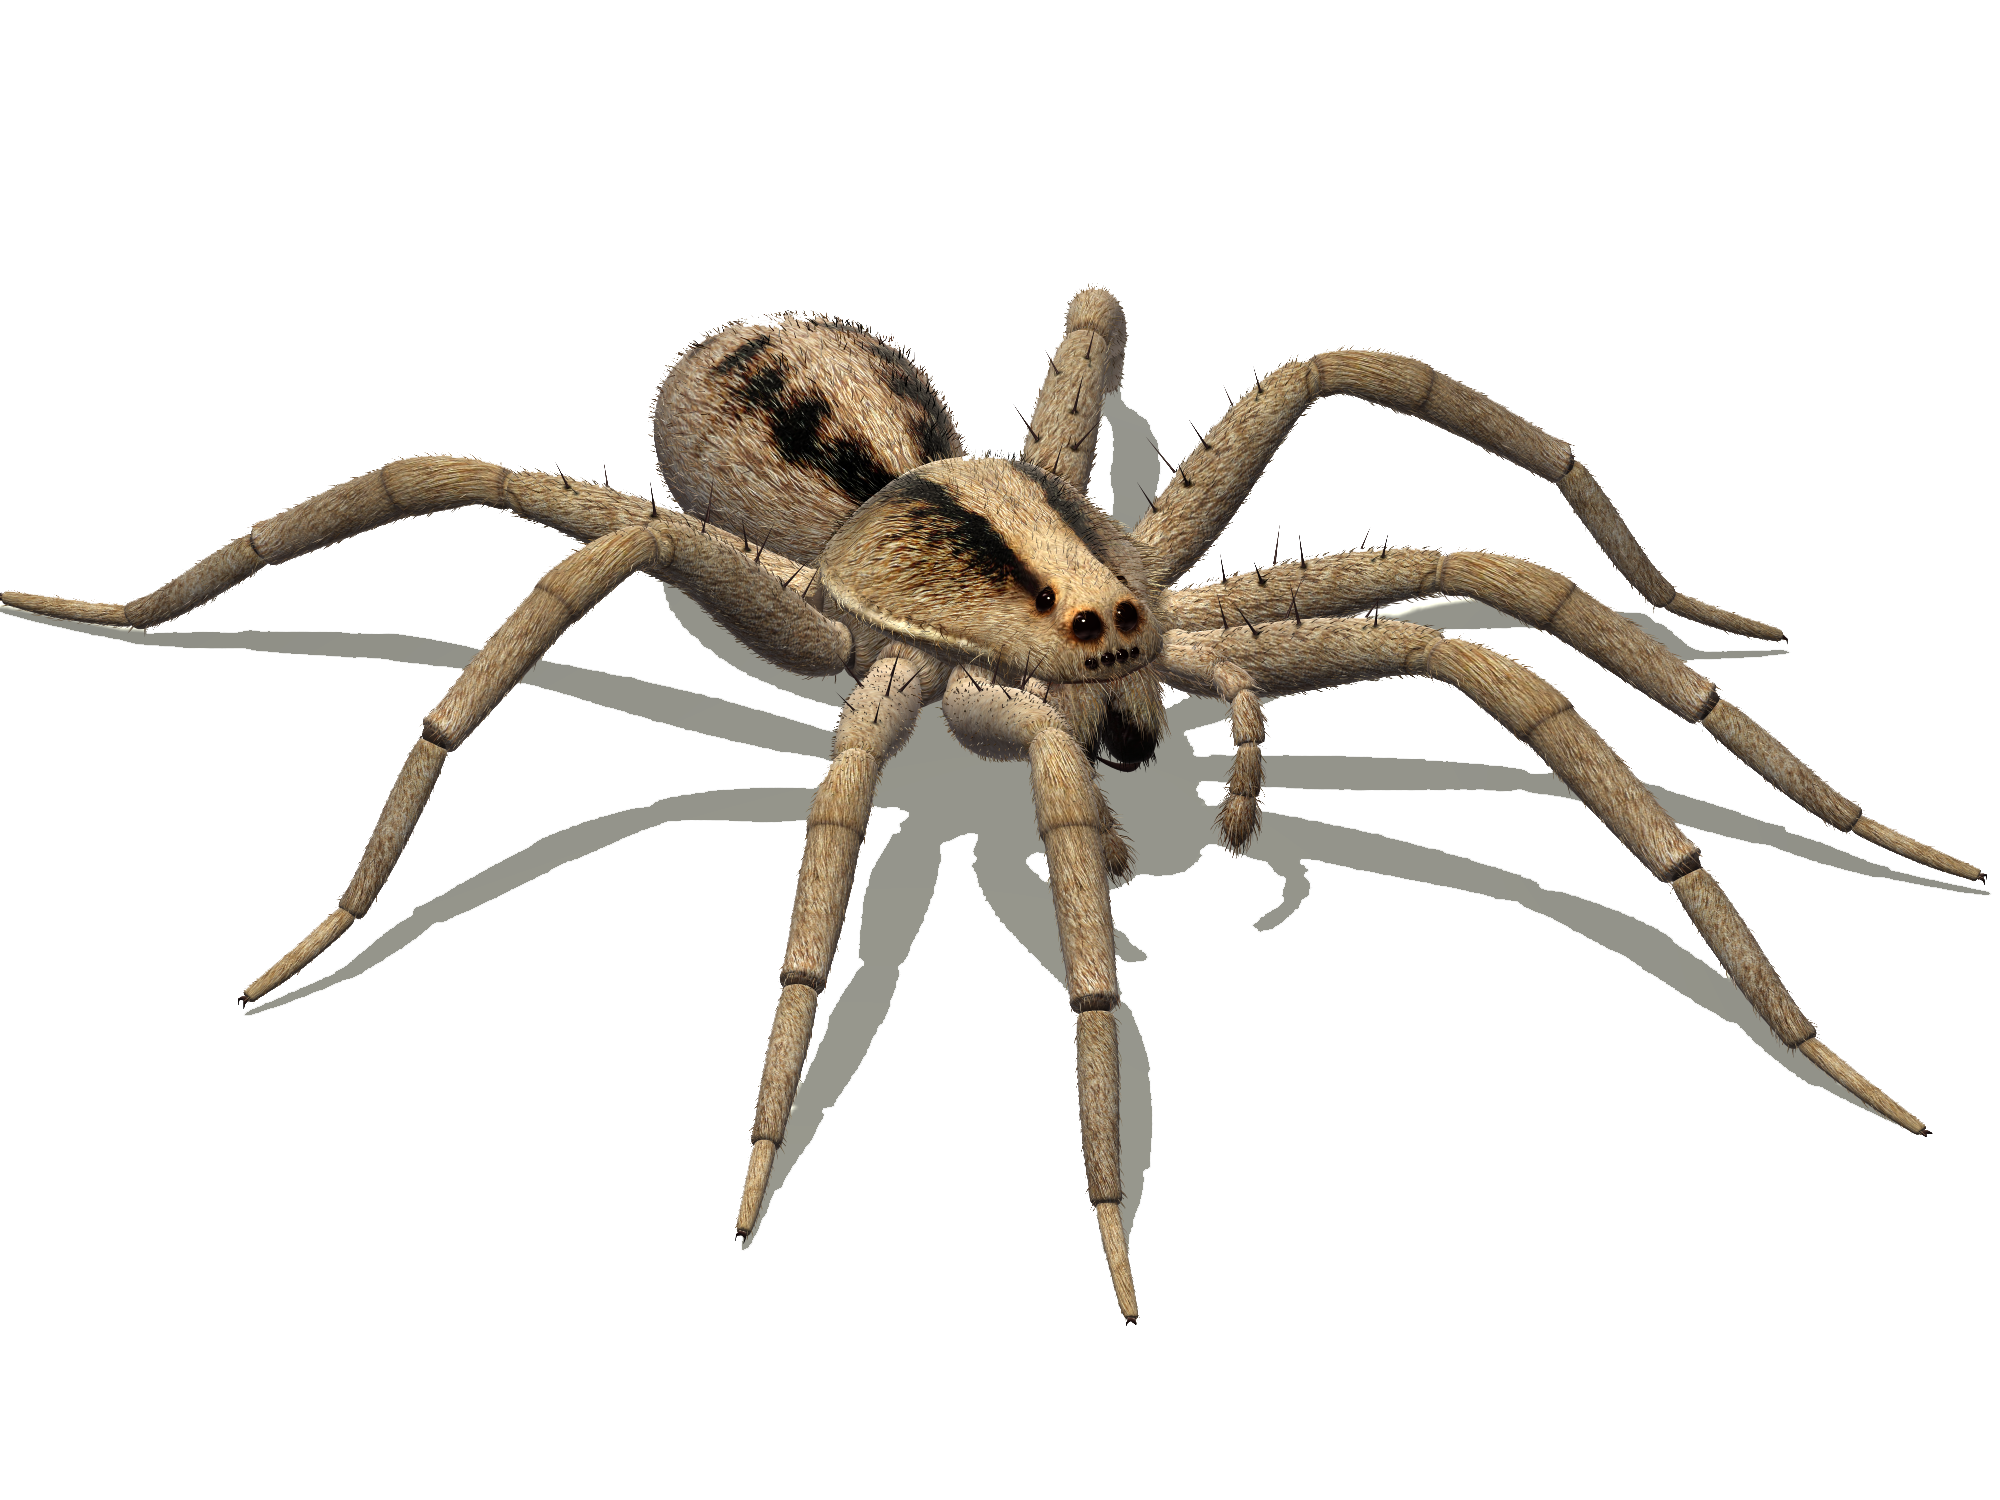 Insect legs png scary. Spider google search bugs